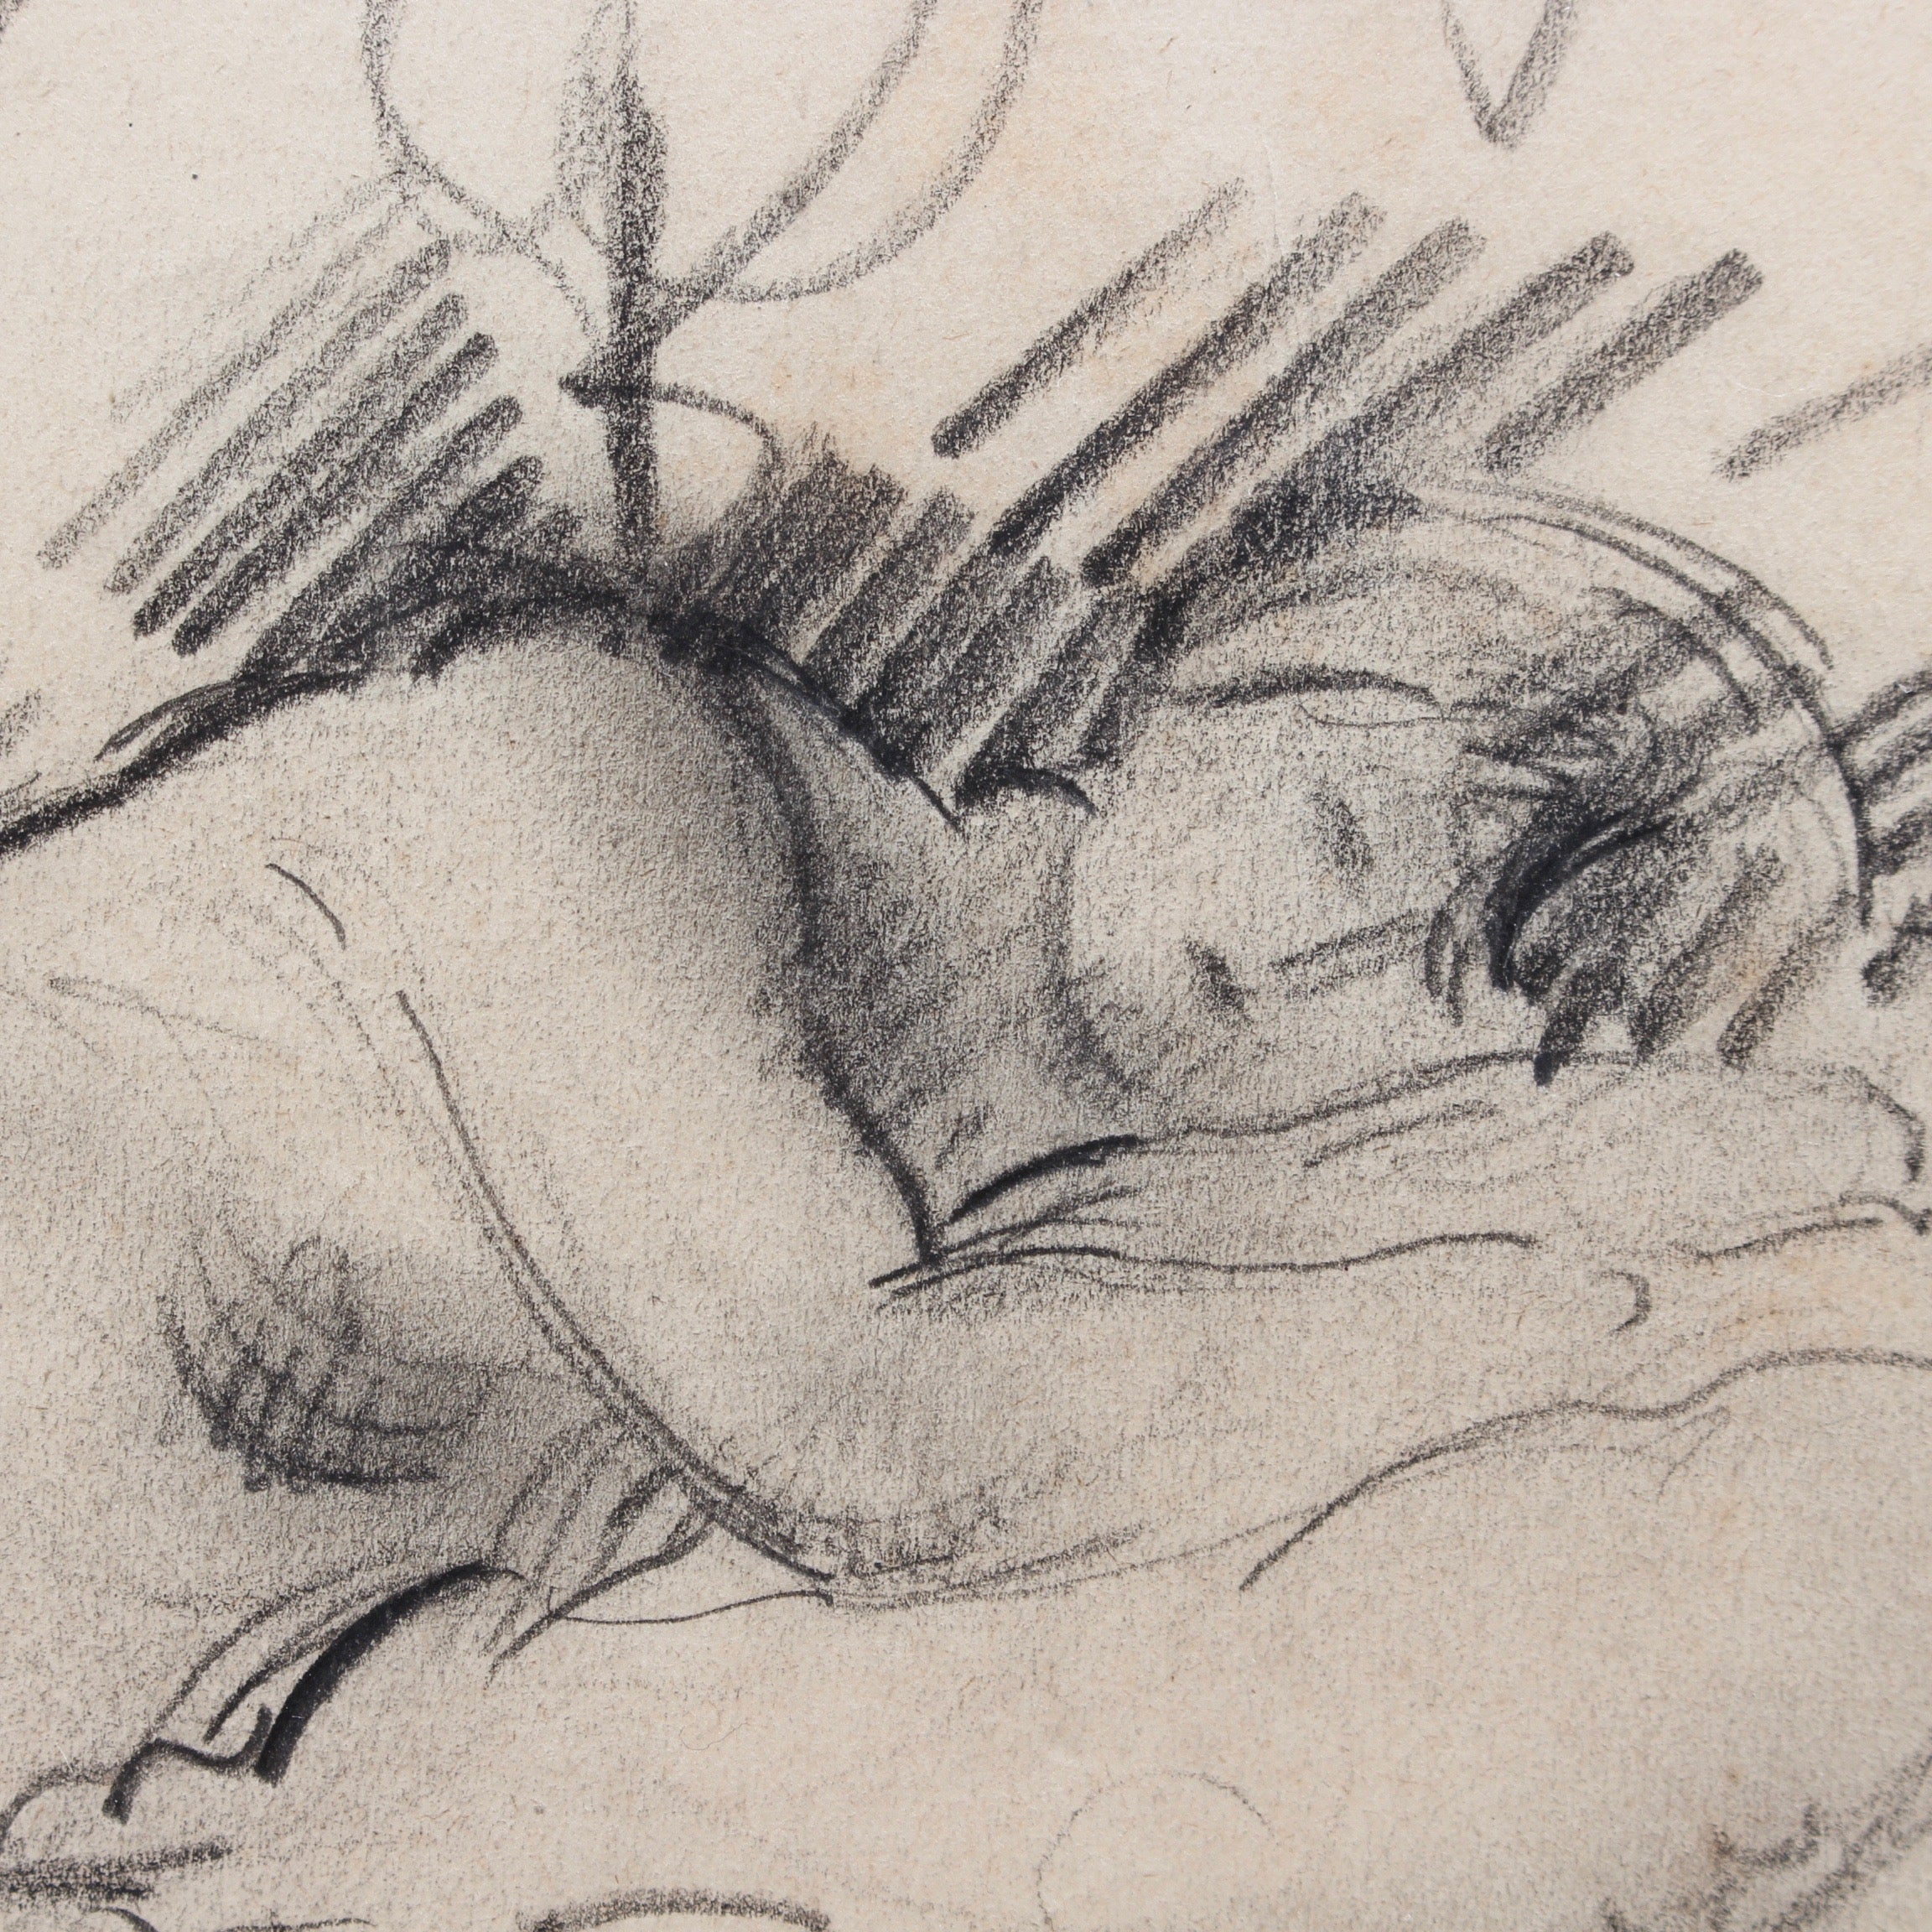 'Reclining Nude' by Guillaume Dulac (circa 1920s)